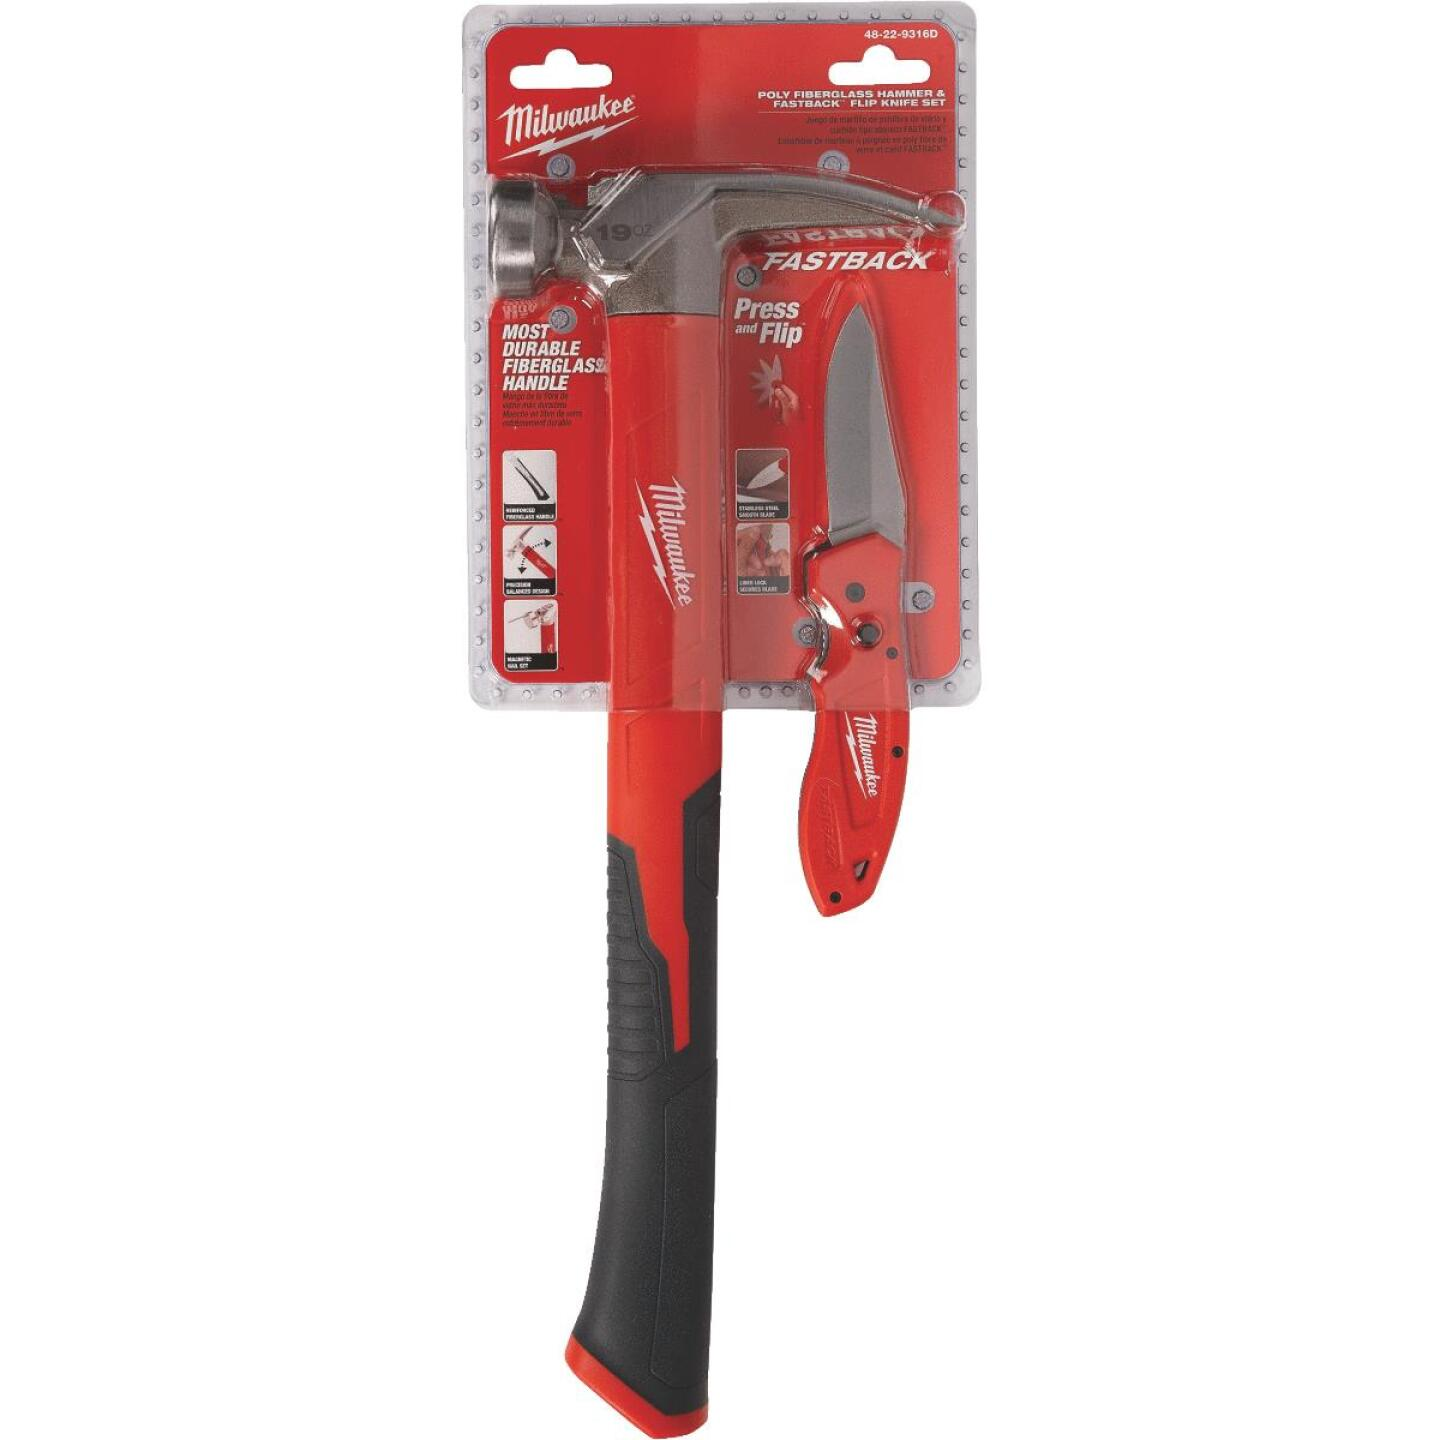 Milwaukee 19 Oz. Claw Hammer and FASTBACK Pocket Knife Combo Tool Set (2-Piece) Image 2